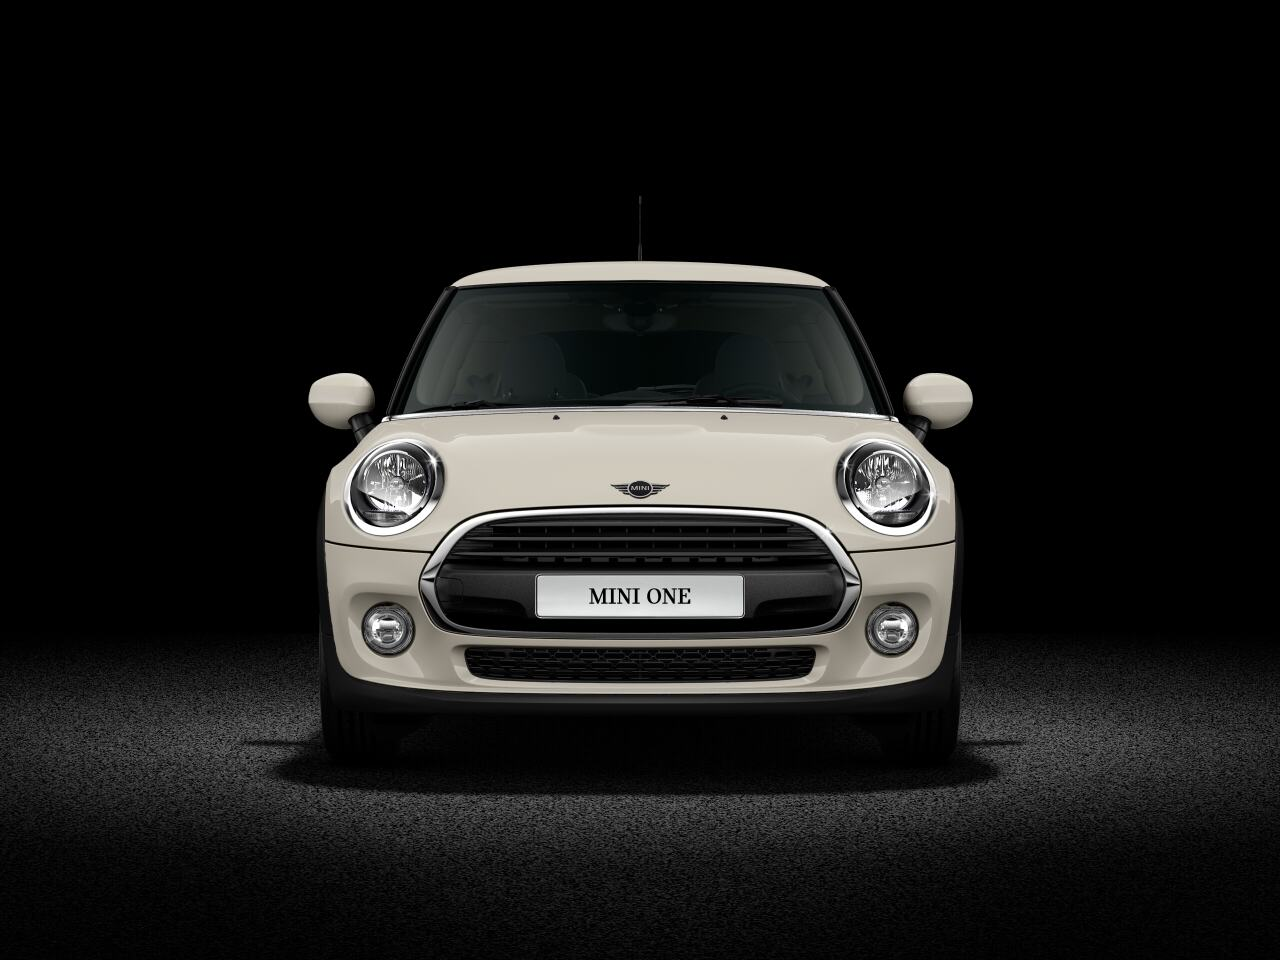 MINI One front view